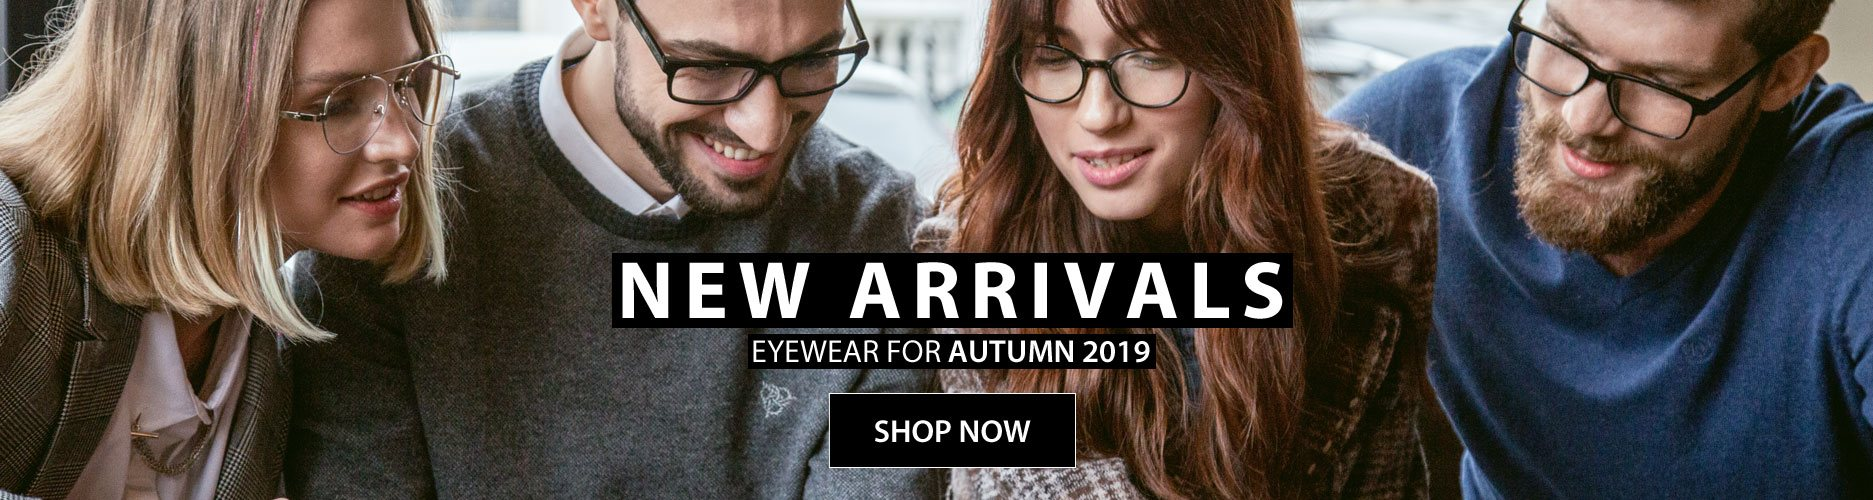 New Arrivals for Autumn 2019